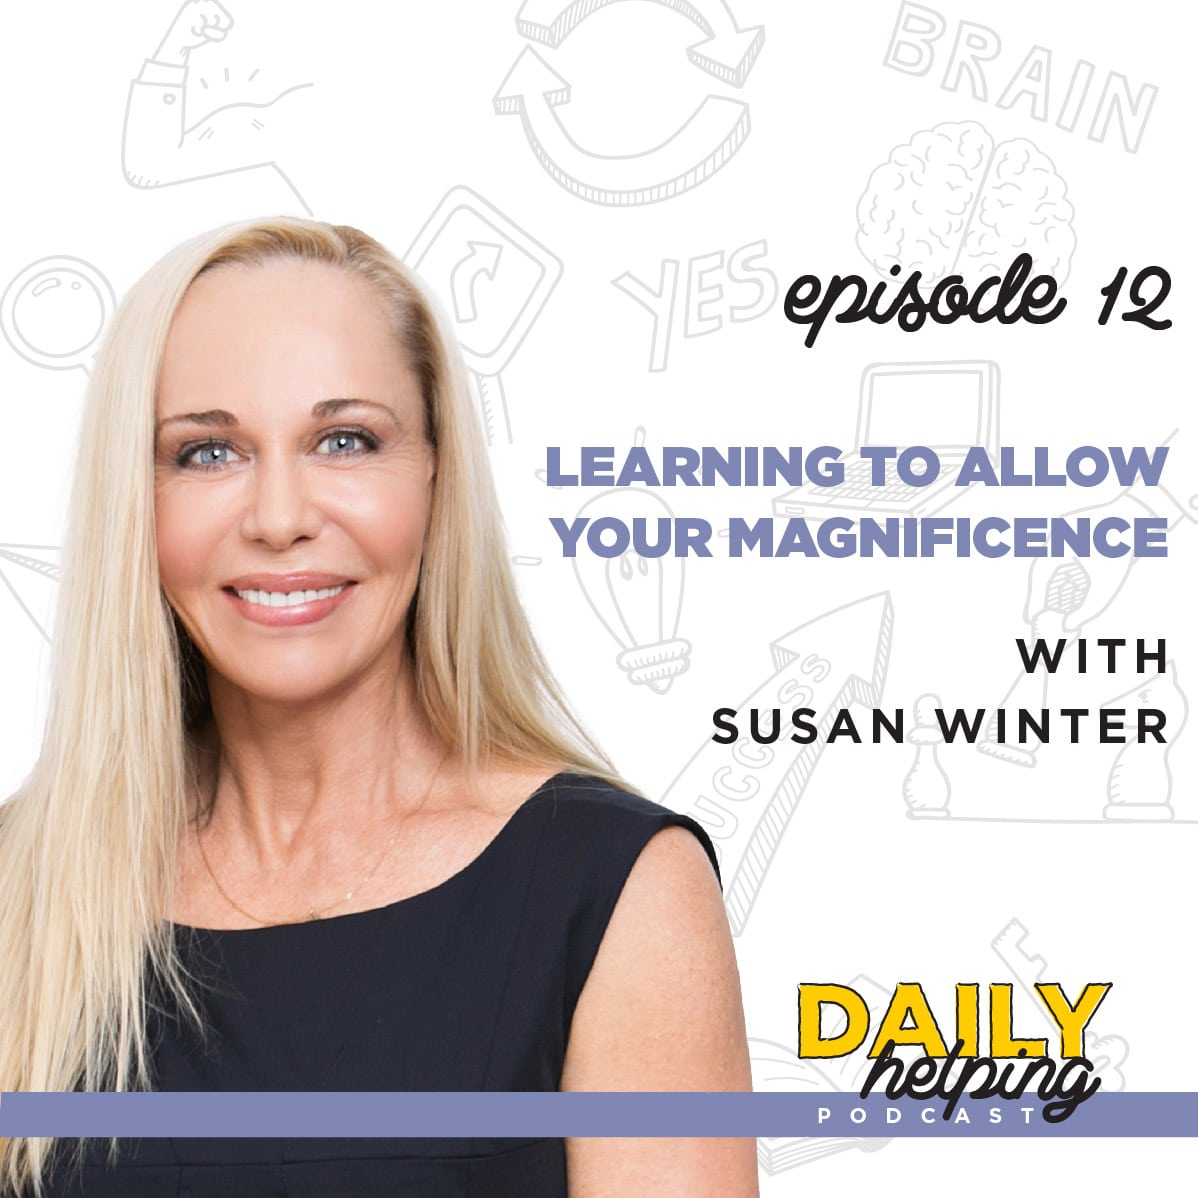 Daily Helping Podcast with Susan Winter